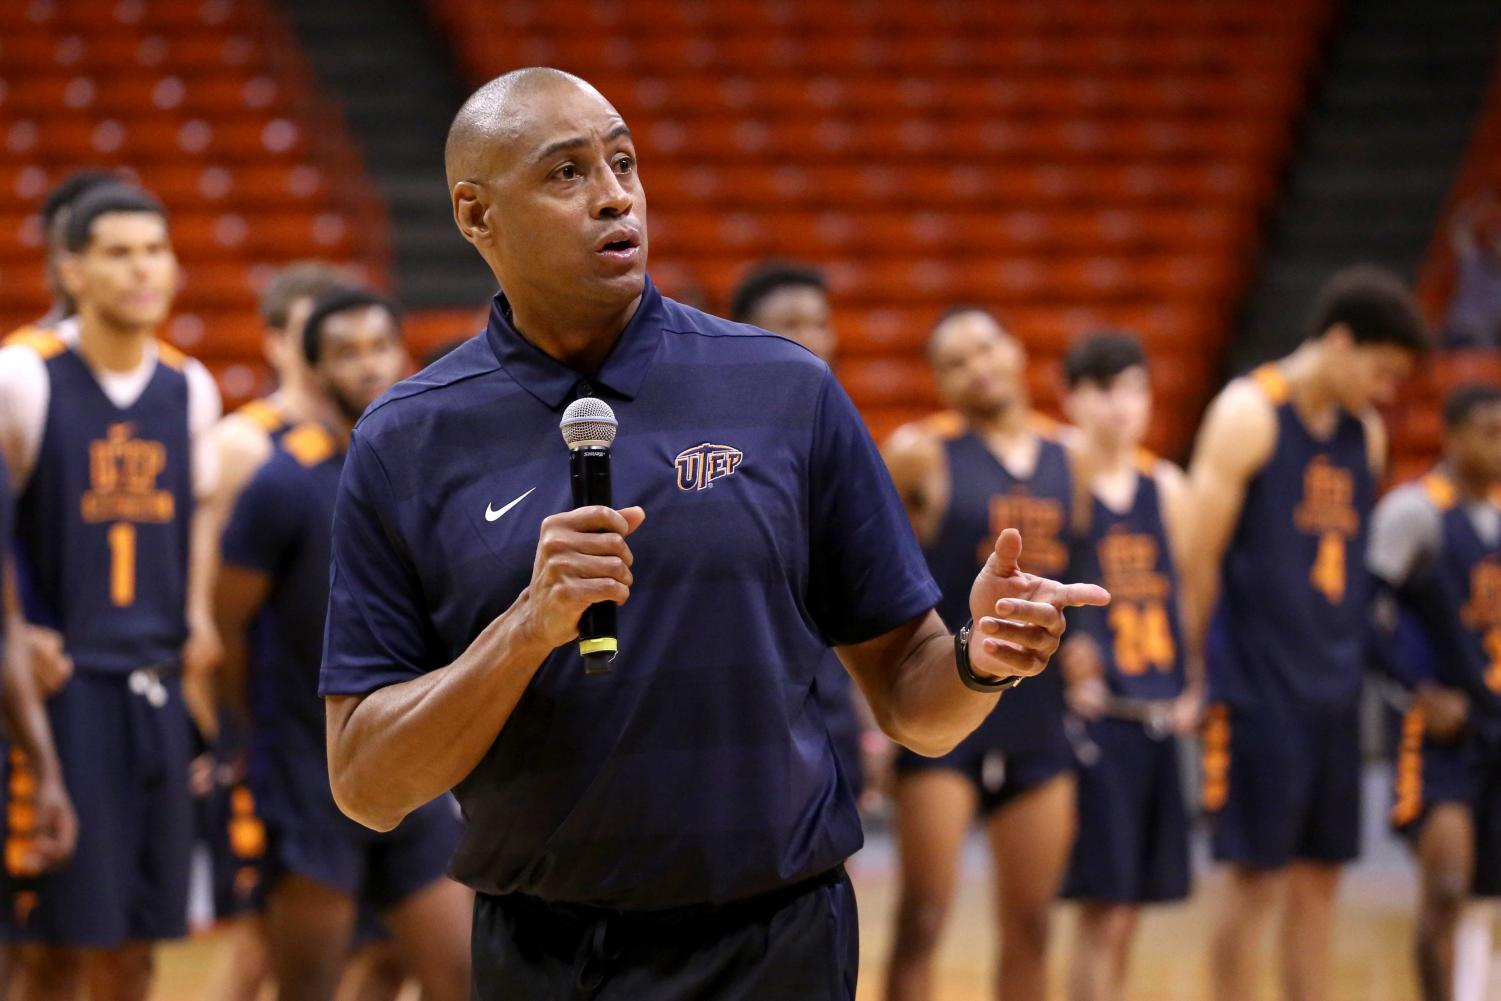 Men%27s+basketball+Head+Coach+Rodney+Terry+talks+to+the+crowd+after+the+basketball+pre+season+showcase+at+the+Don+Haskins+Center+on+Wednesday%2C+Oct.+10.+